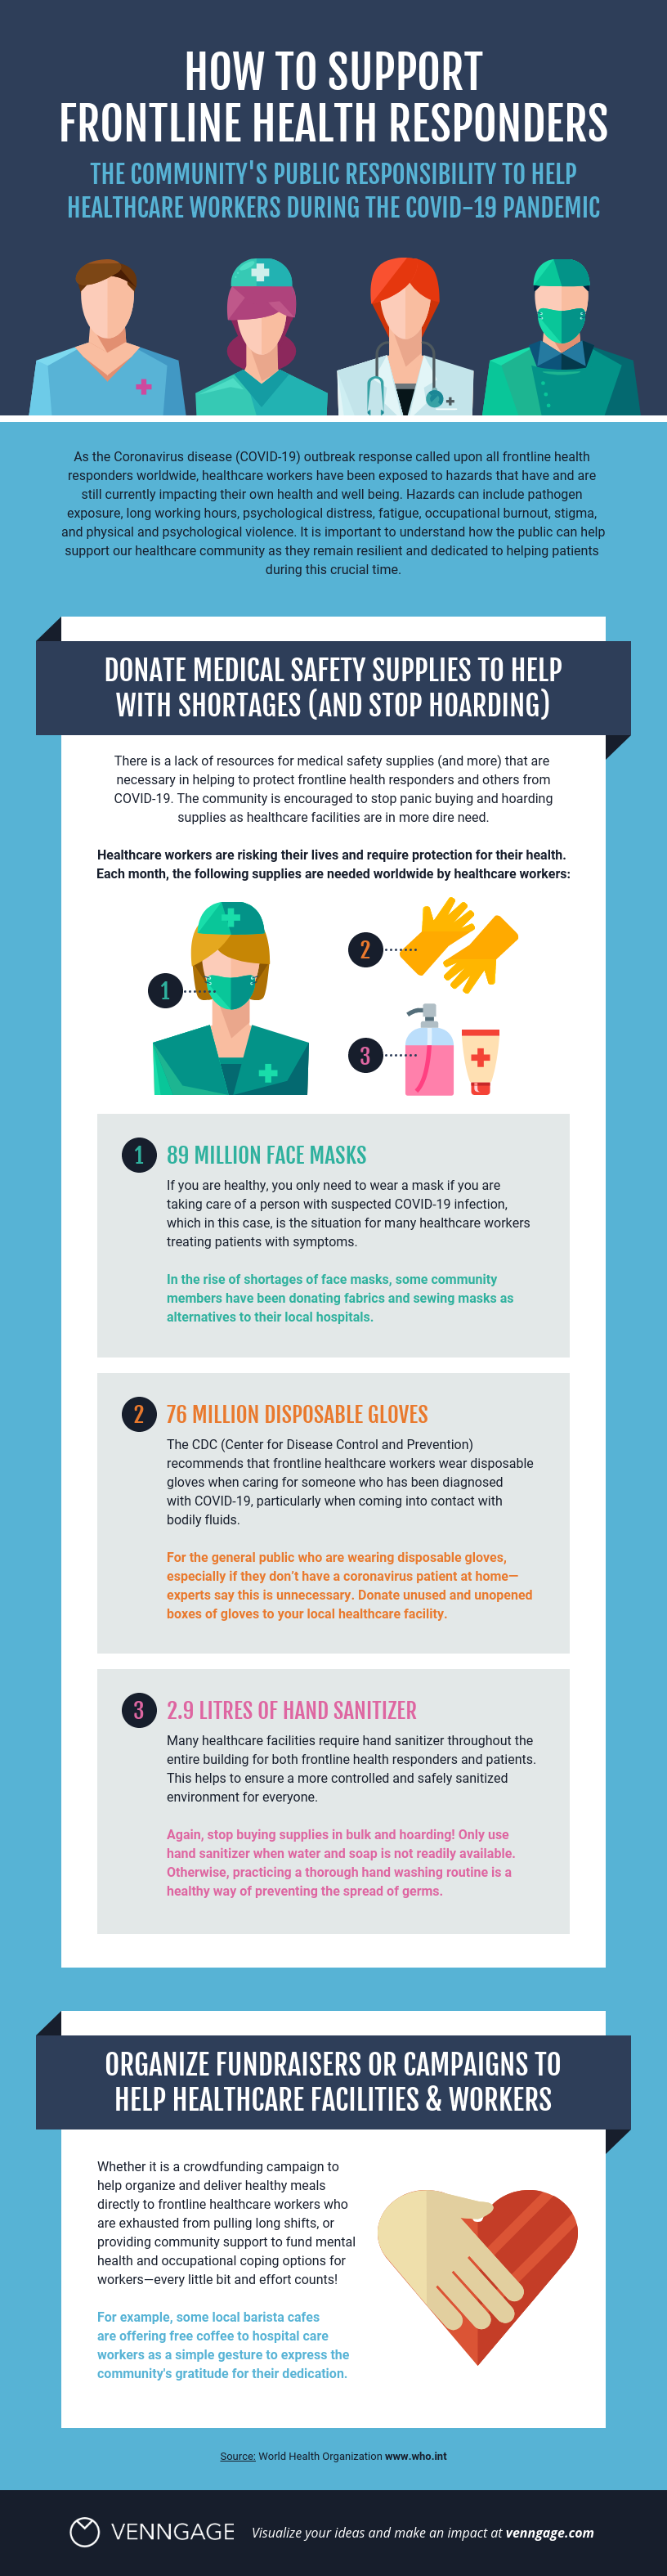 Support Frontline Healthcare Workers Infographic Template